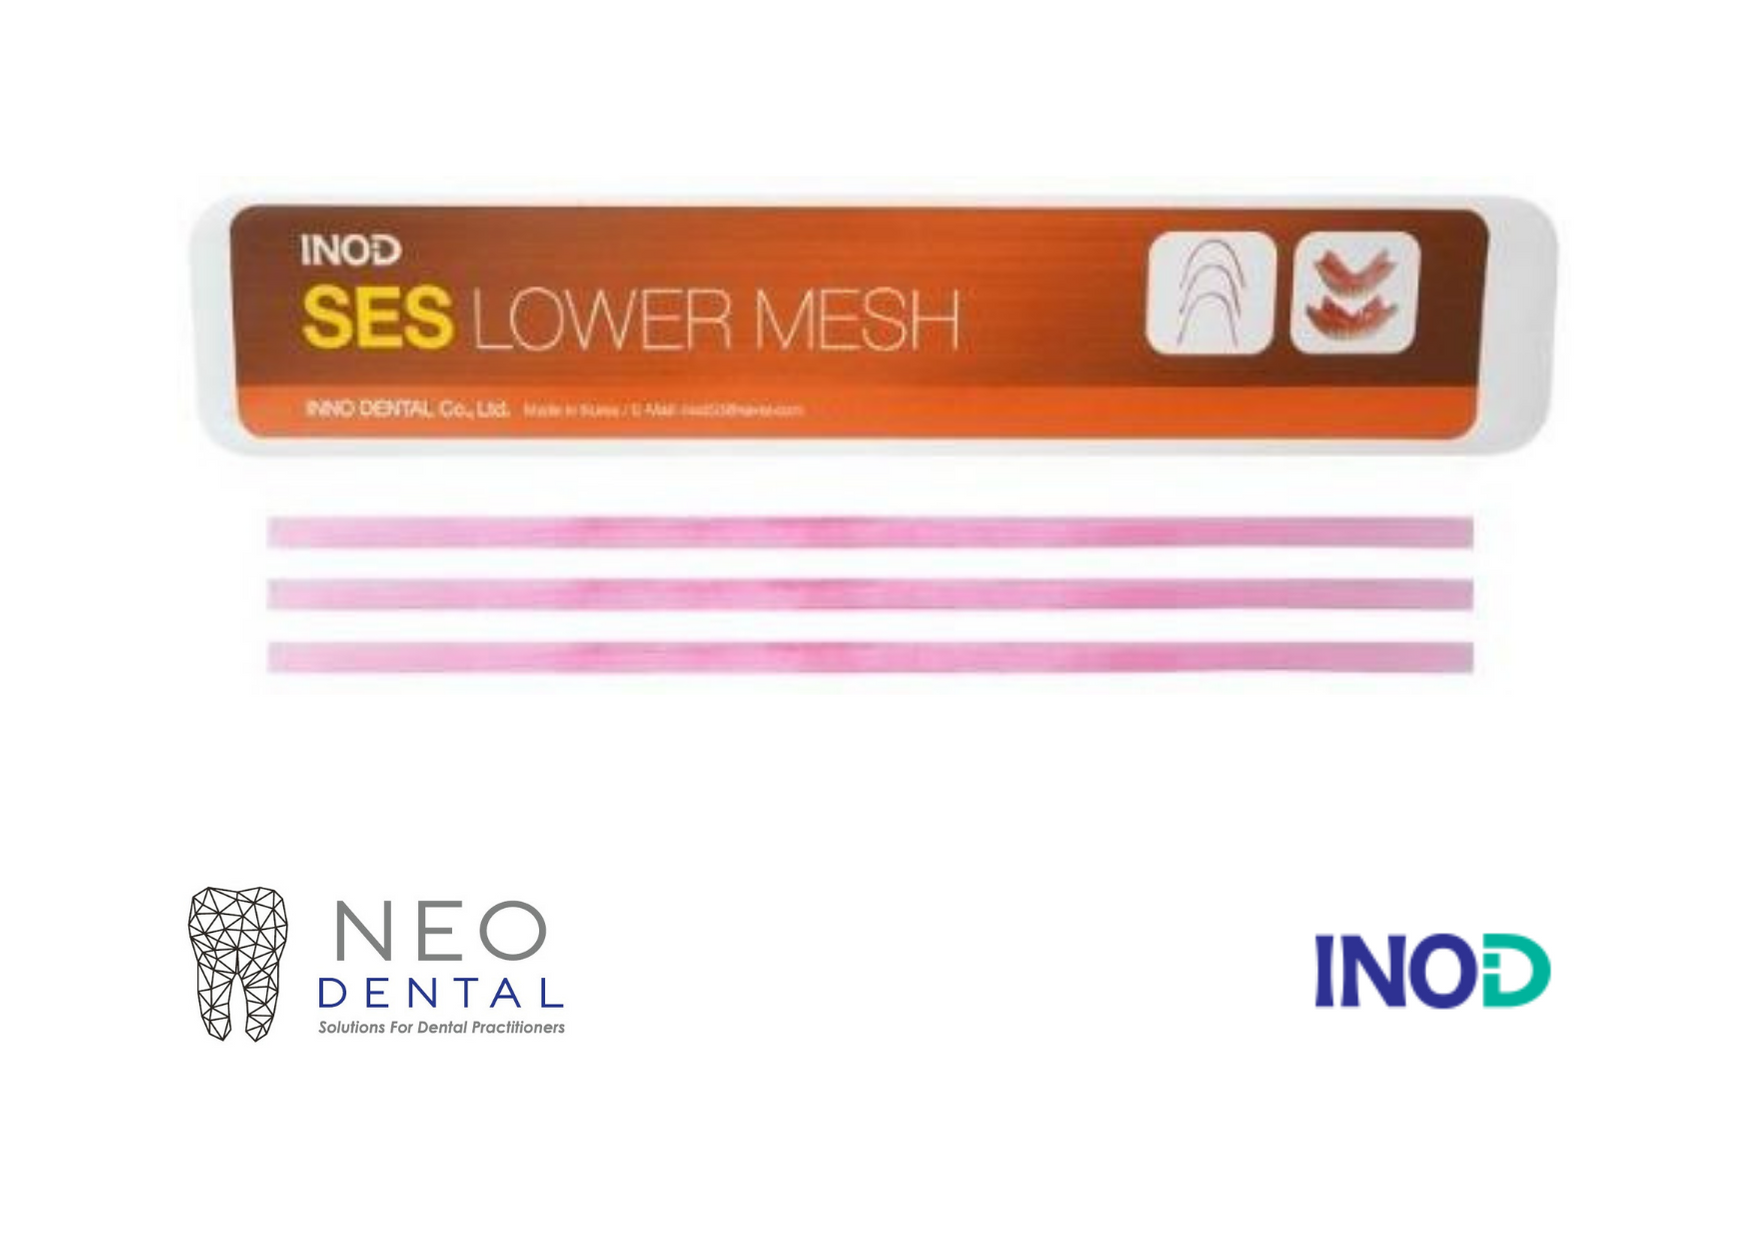 INOD SES Fiber Mesh Lower